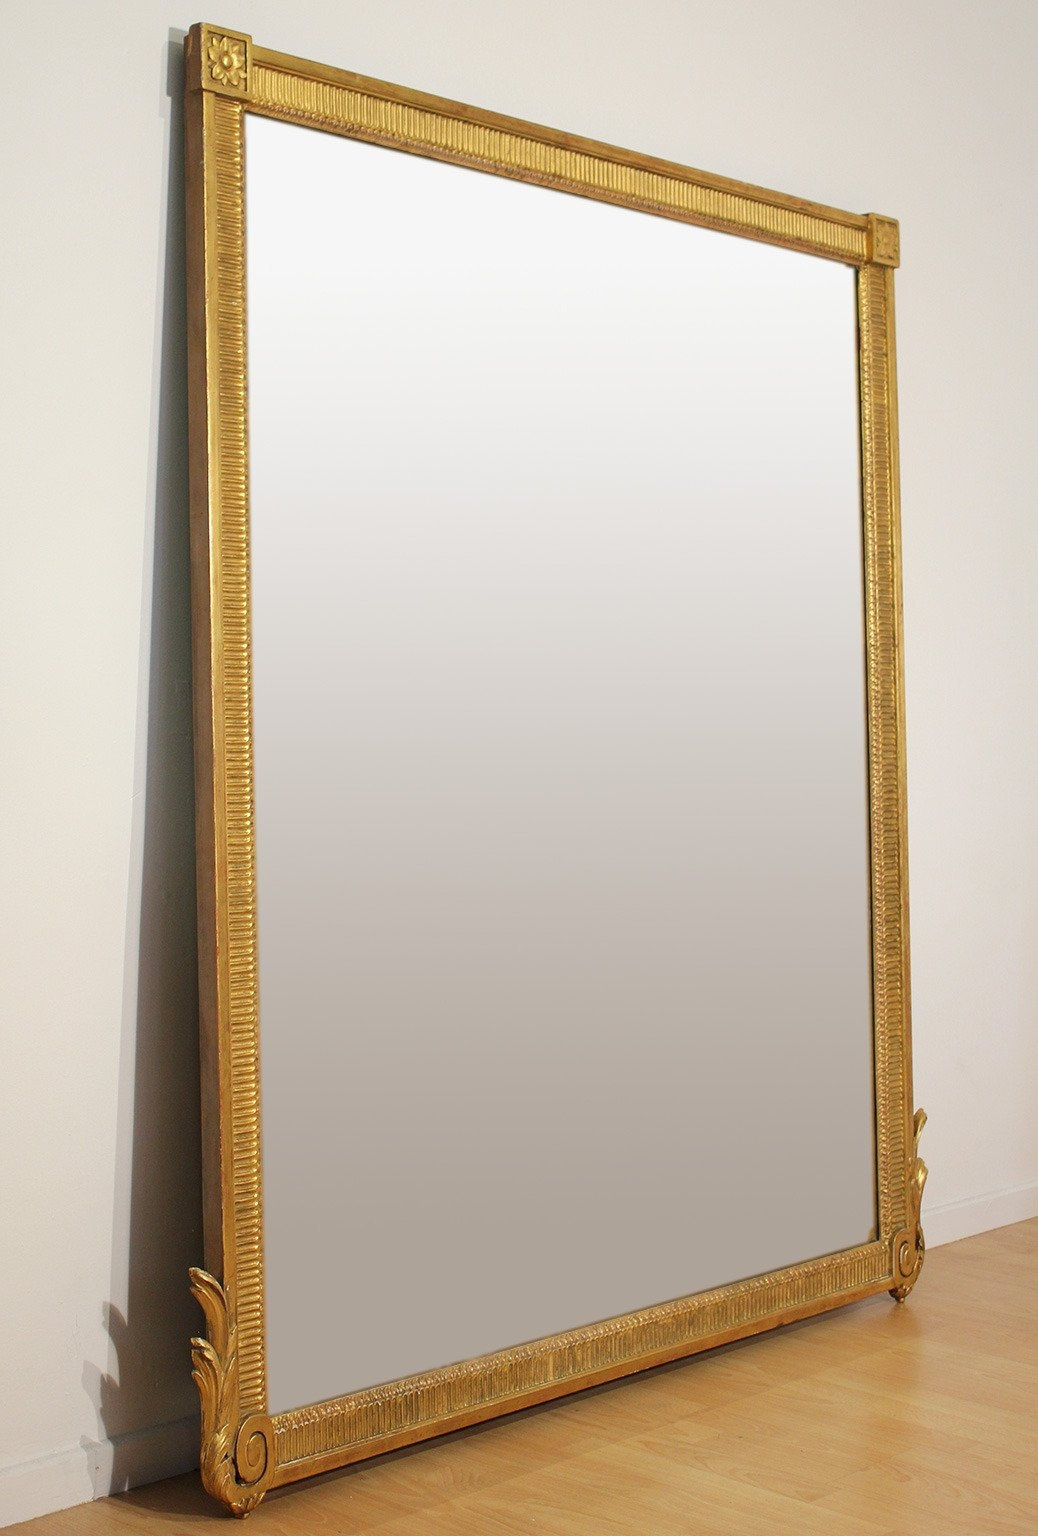 Large Antique French Neoclassical Decorative Gold Framed Mirror At Inside Gold French Mirror (Image 10 of 15)